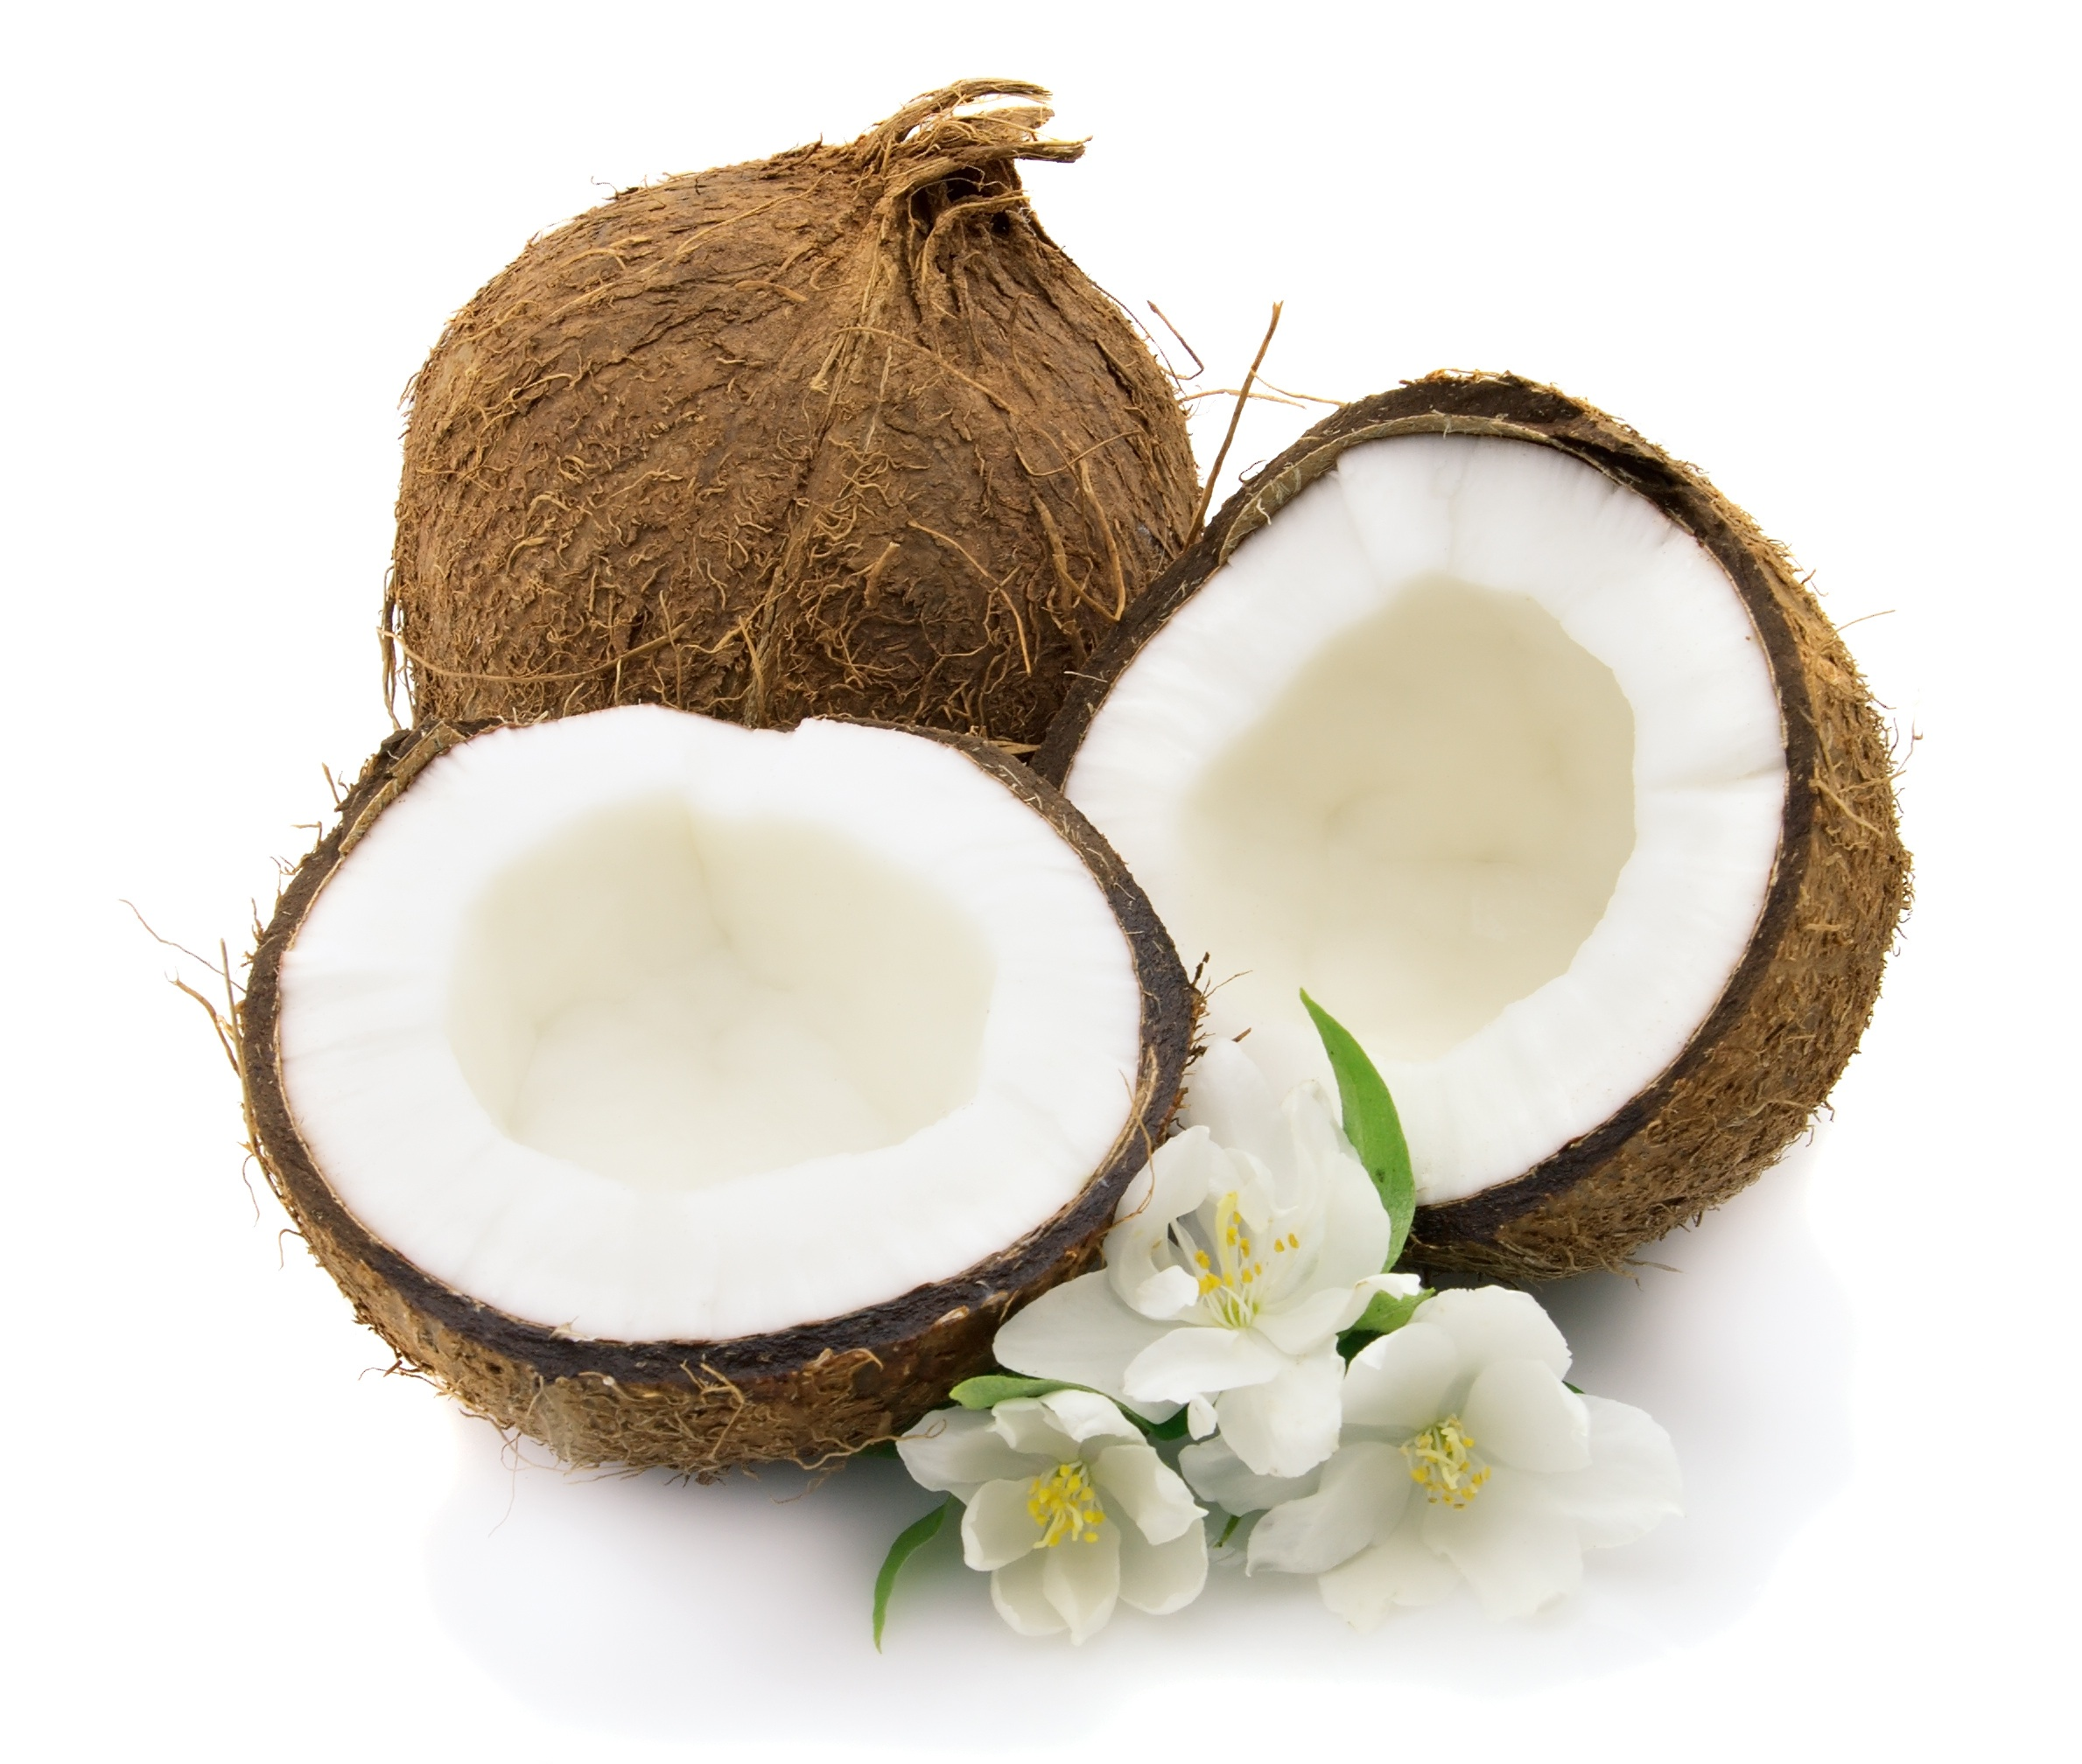 Naturally Refined Coconut Oil For Skin